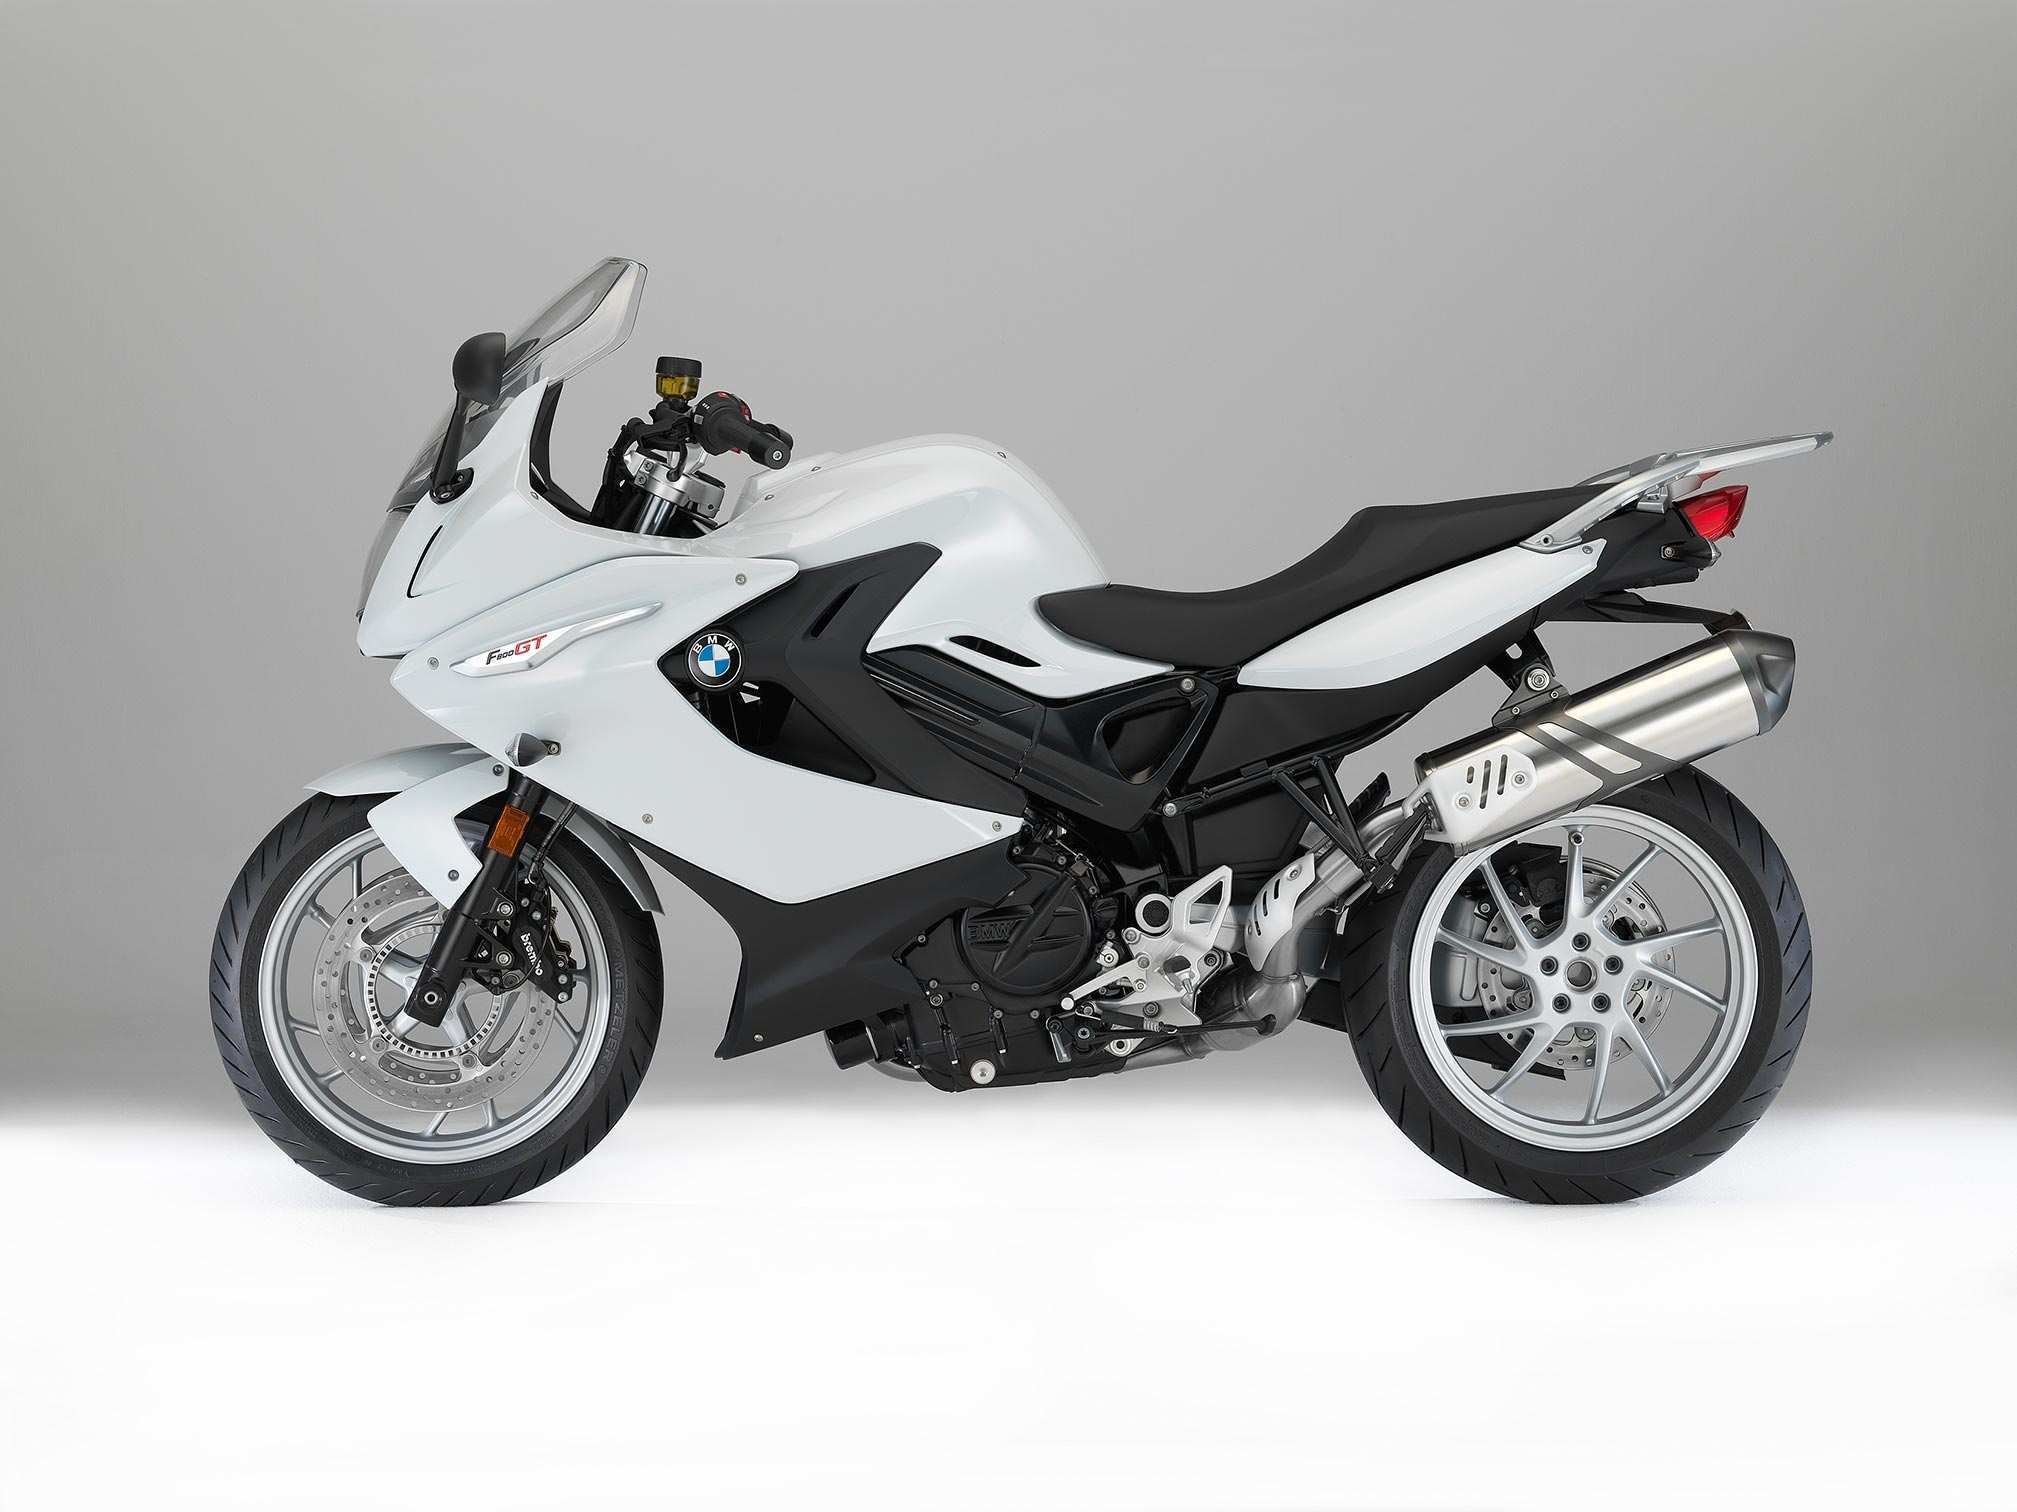 45 Concept of Bmw F800Gt 2019 Review And Price Price and Review by Bmw F800Gt 2019 Review And Price